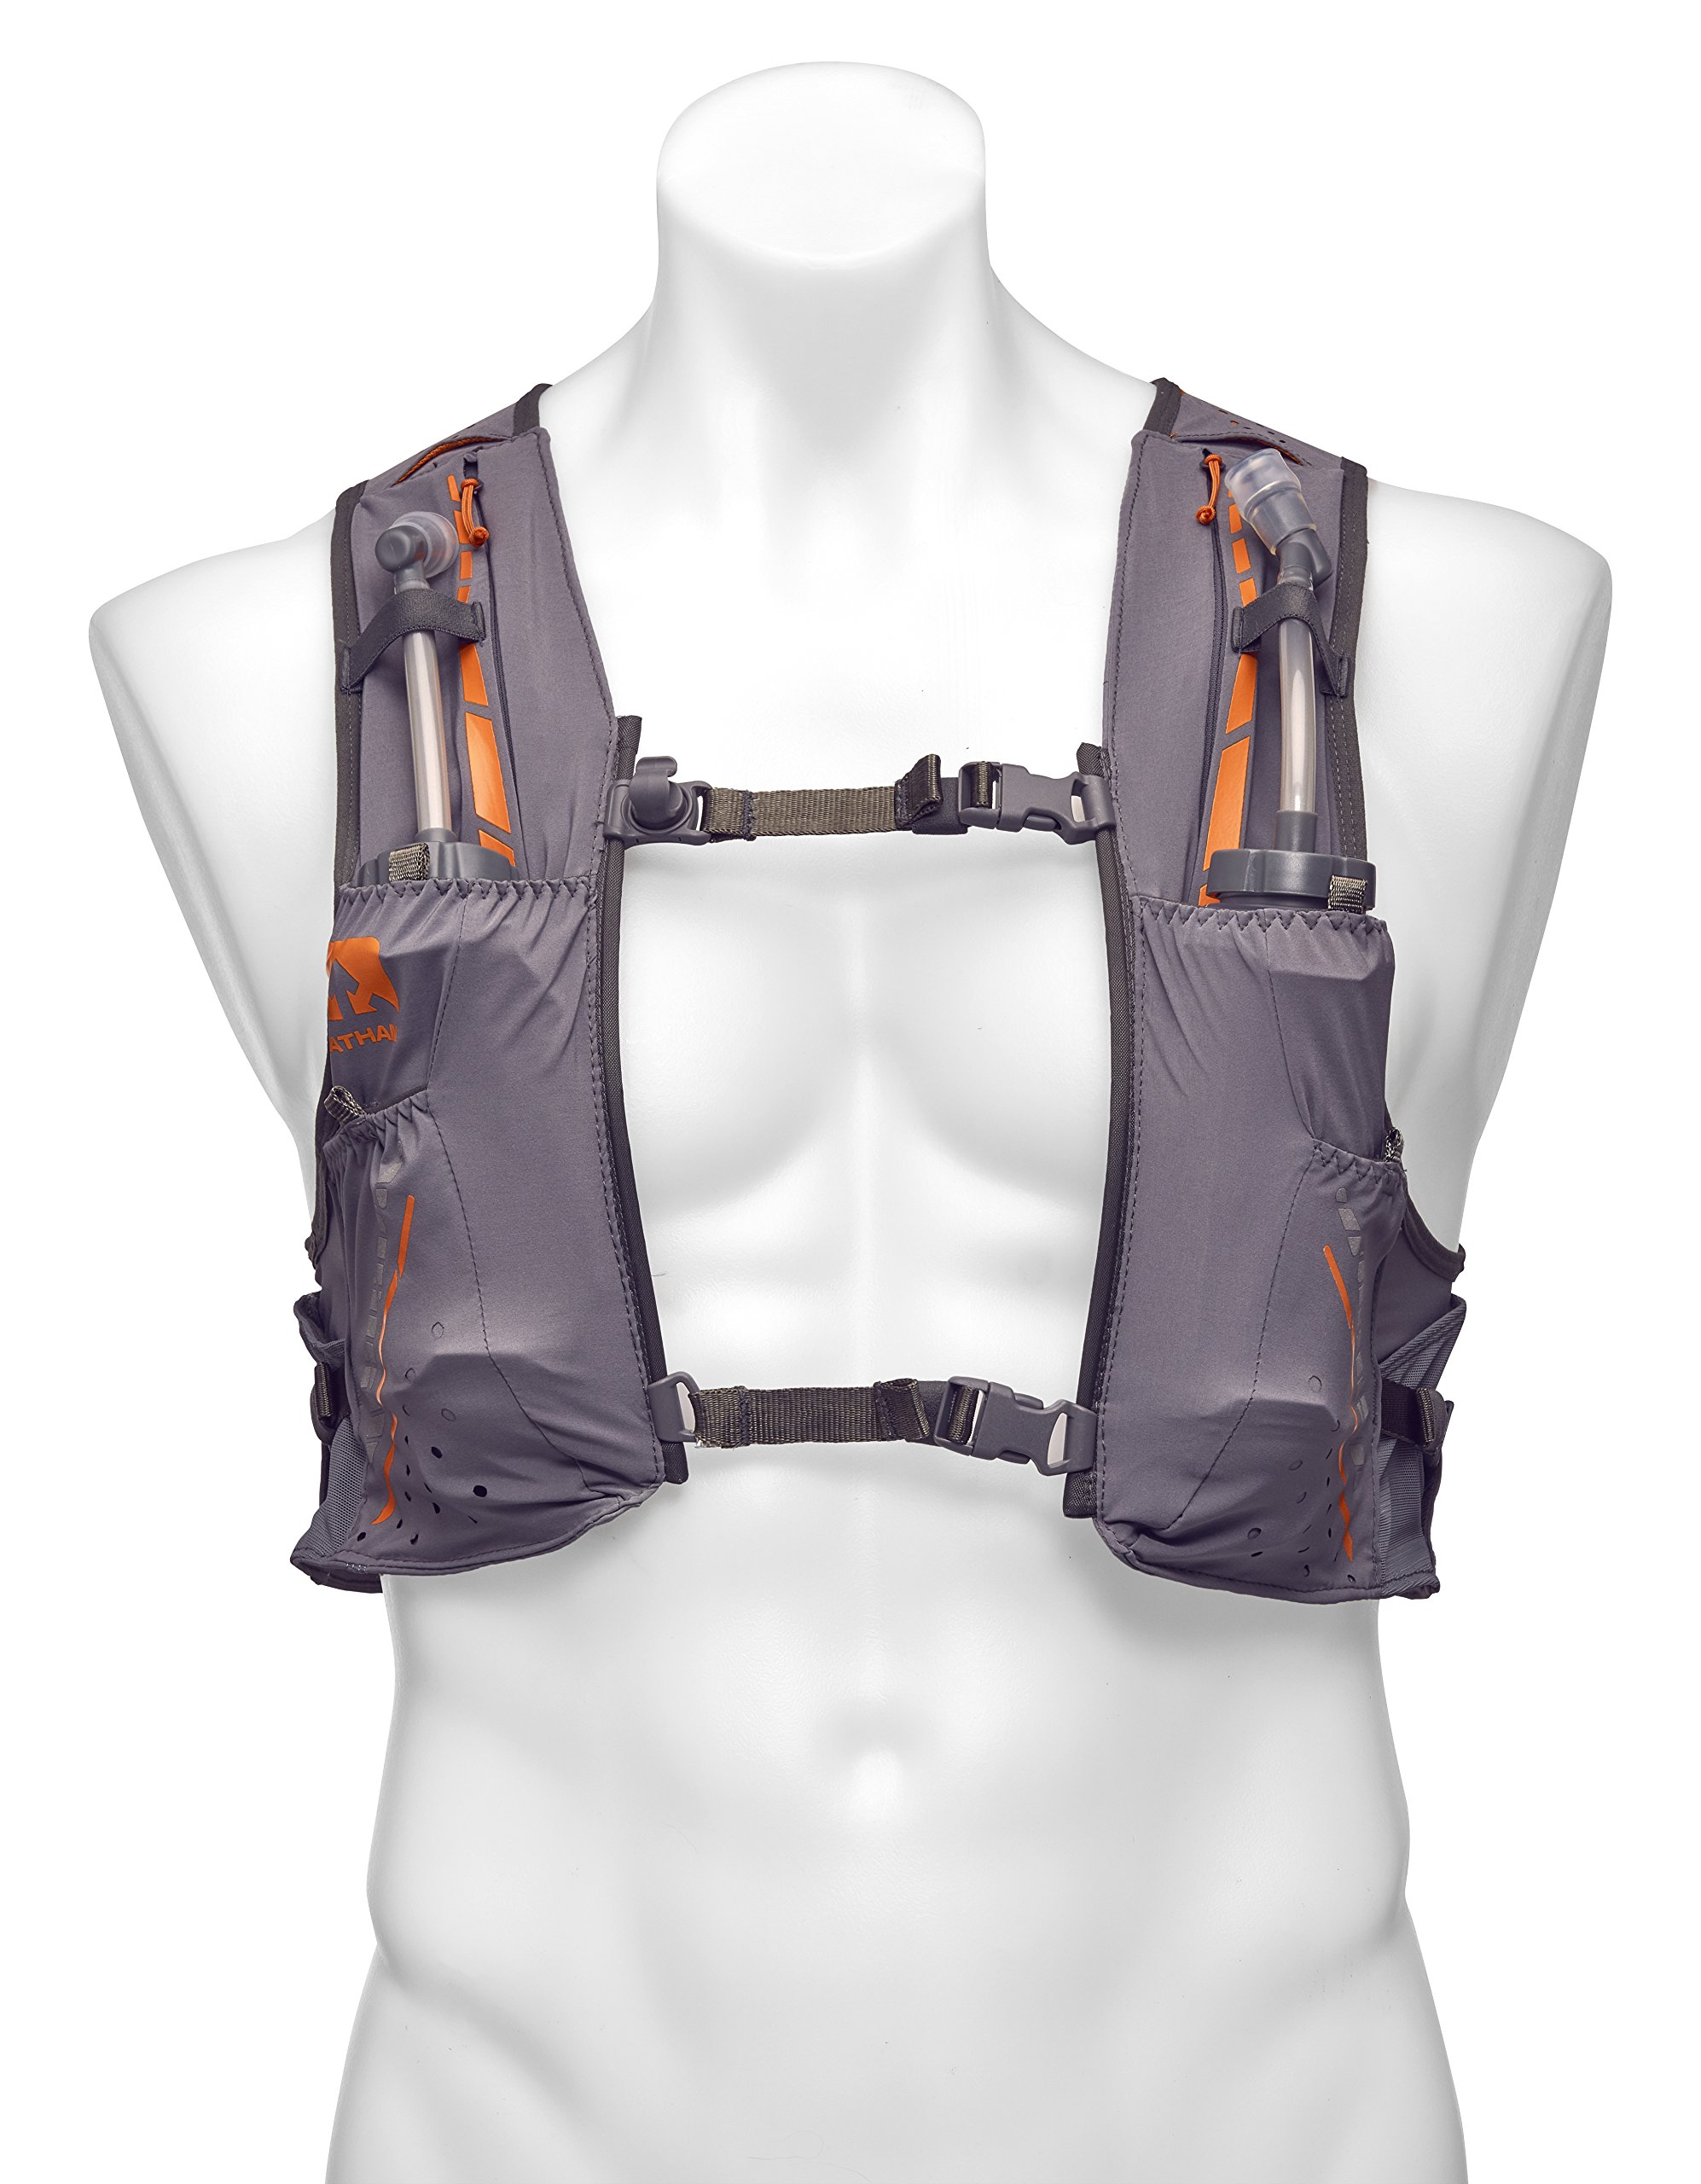 Nathan NS4535 Vaporkrar Hydaration Pack Running Vest with 1.8L Bladder, Steel Grey, Large